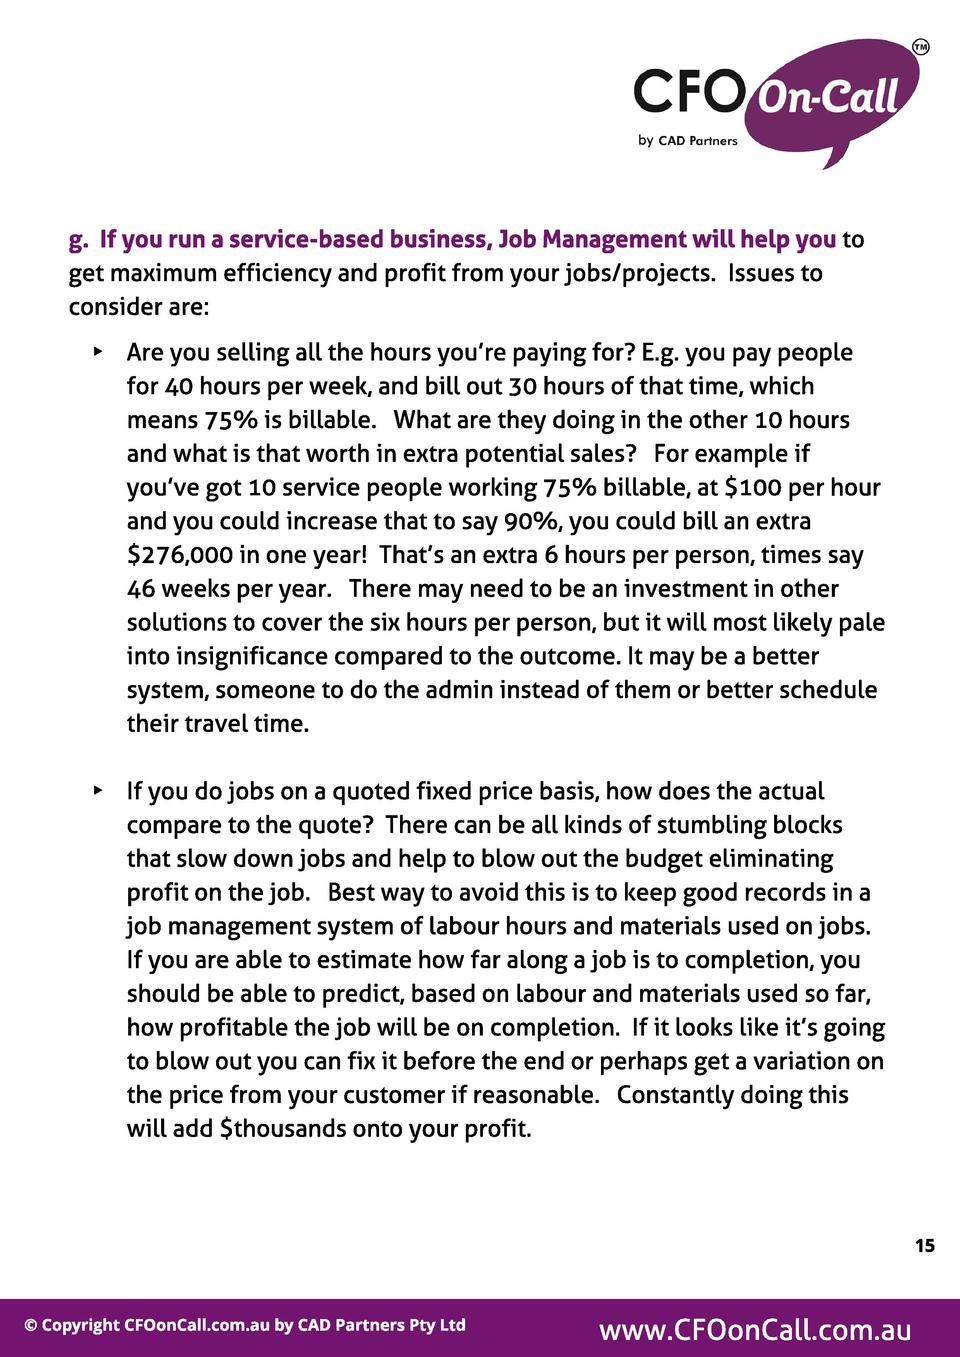 g. If you run a service-based business, Job Management wil l hel p you to get maximum efficiency and profit from your jobs...